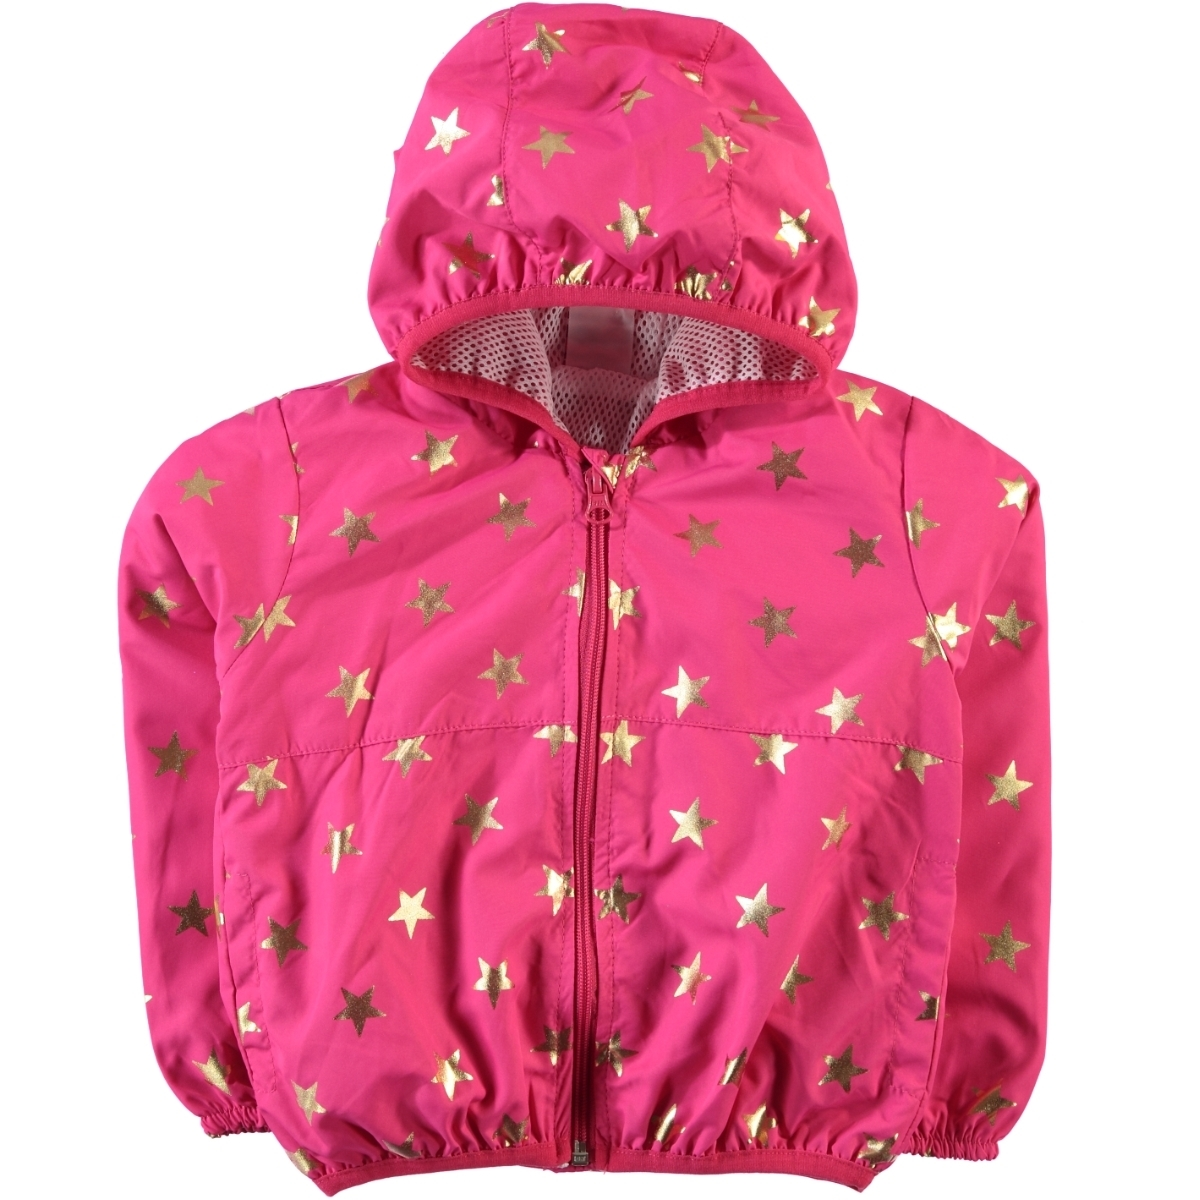 Civil Baby A Raincoat Baby Girl 6-18 Months Fuchsia